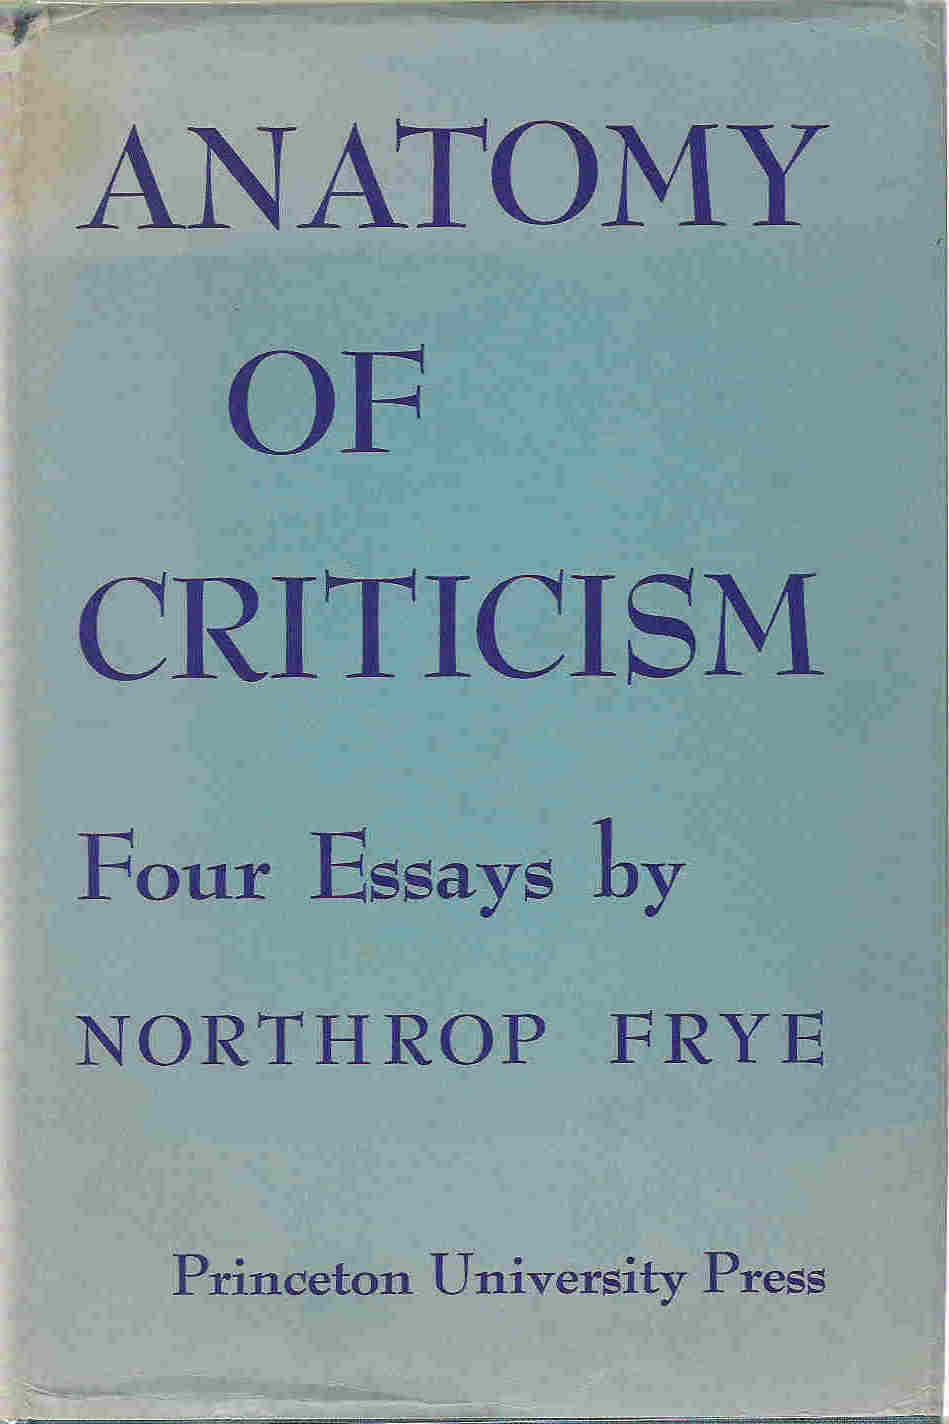 anatomy of criticism four essays by northrop frye Buy anatomy of criticism: four essays new edition by northrop frye (isbn: 9780691012988) from amazon's book store everyday low prices and free delivery on eligible orders.